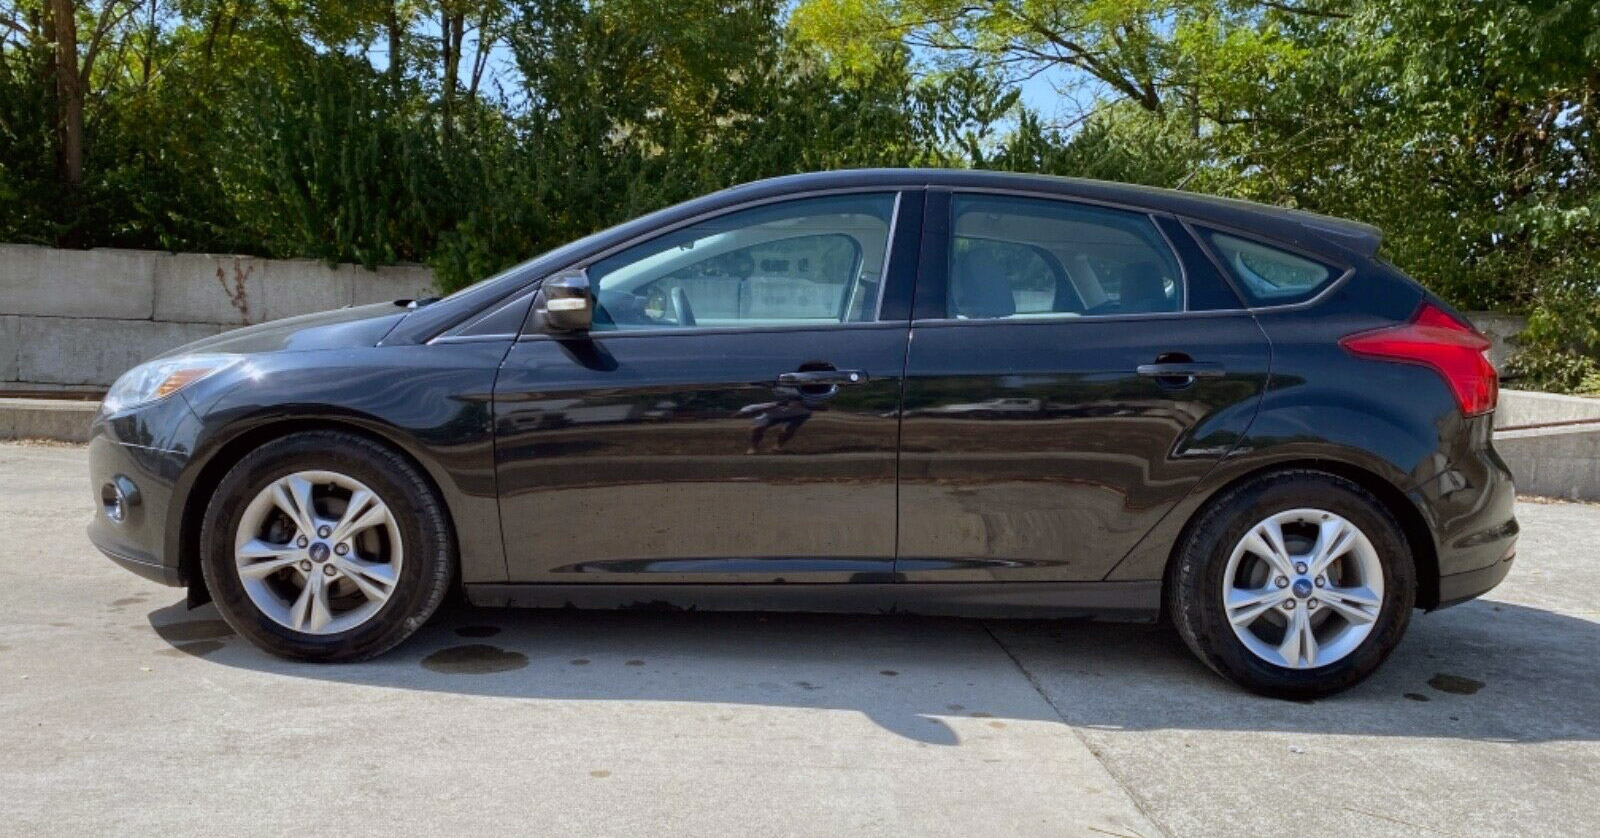 This 2013 Ford Focus Hatch could be a great delivery car